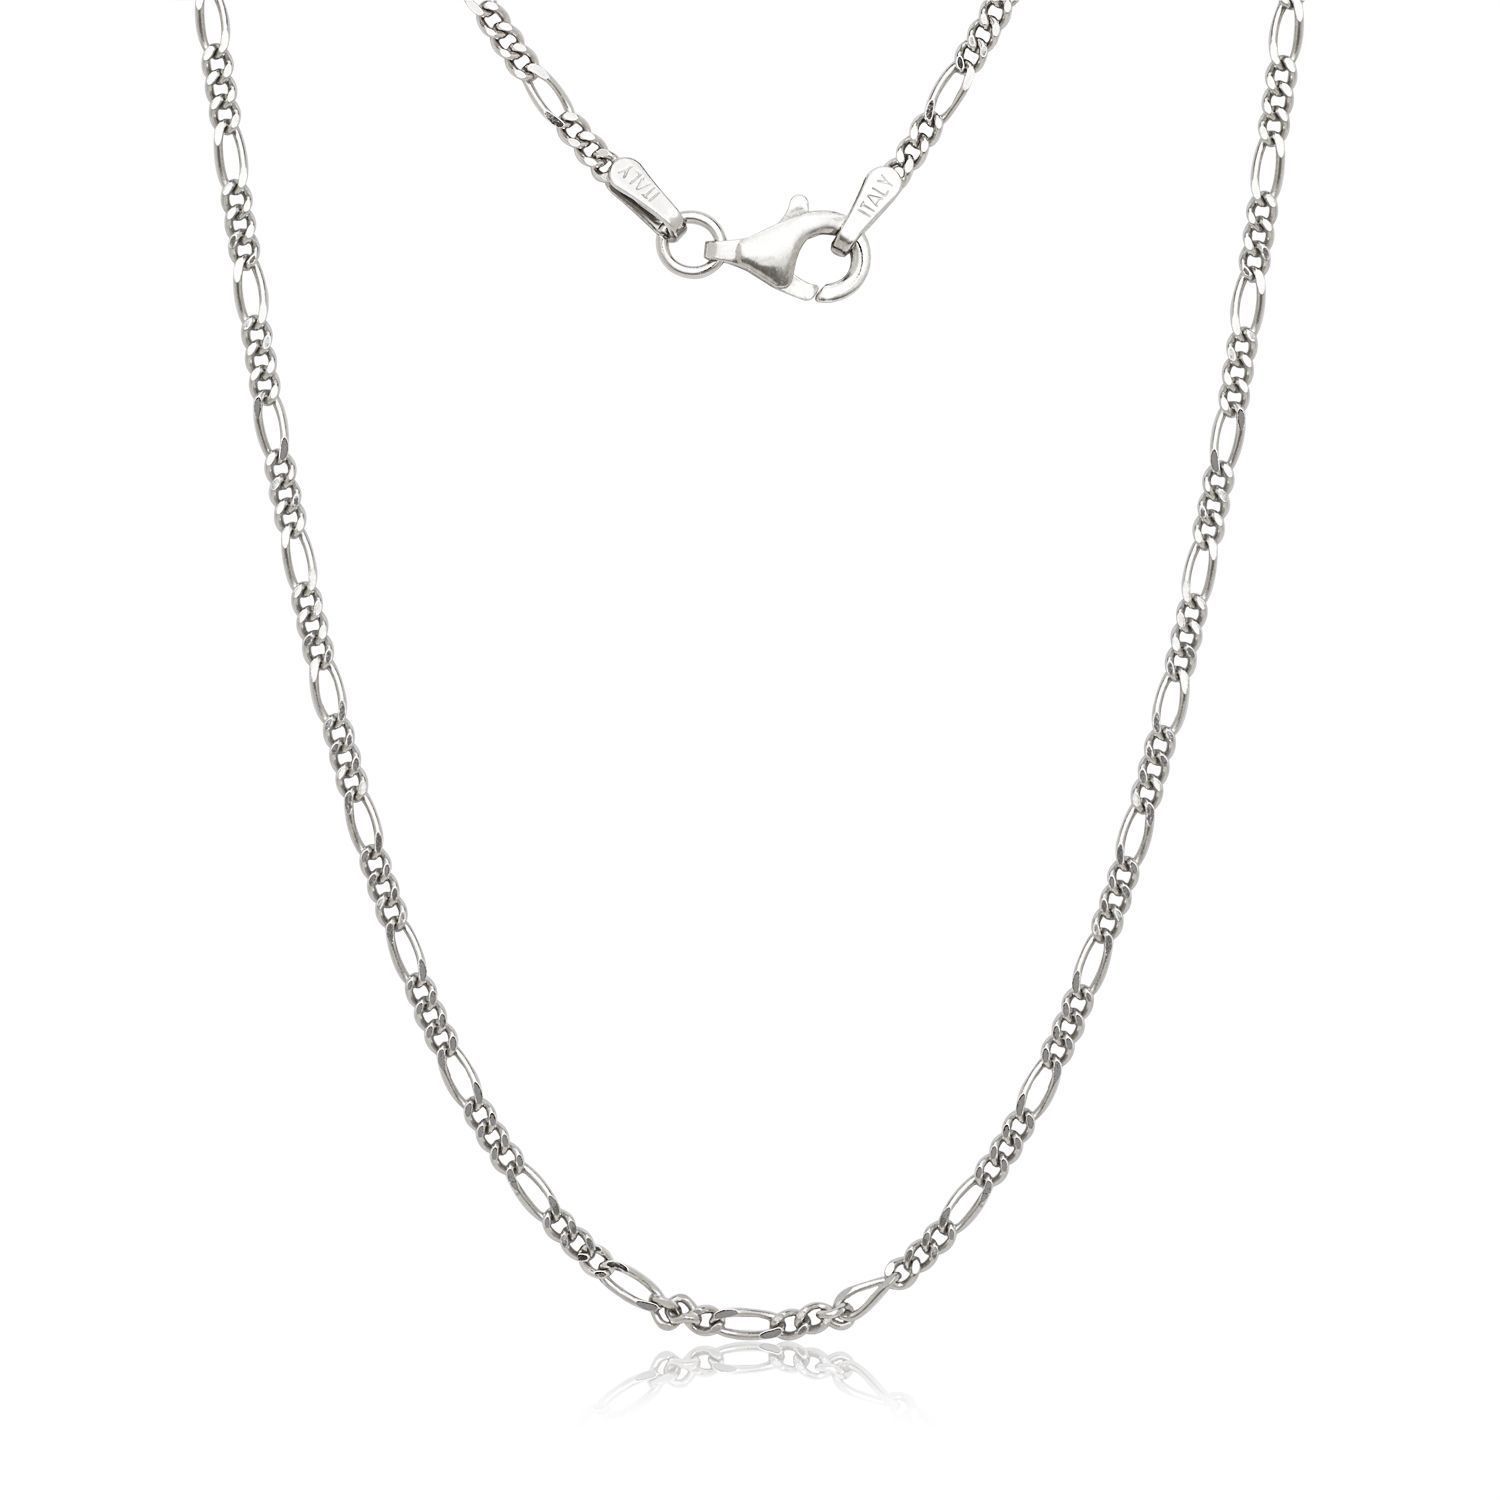 Italian Rhodium-Plated Sterling Silver 16-inch to 30-inch Light Figaro Chain (18-inch), Women's, Size: 18 Inch, White